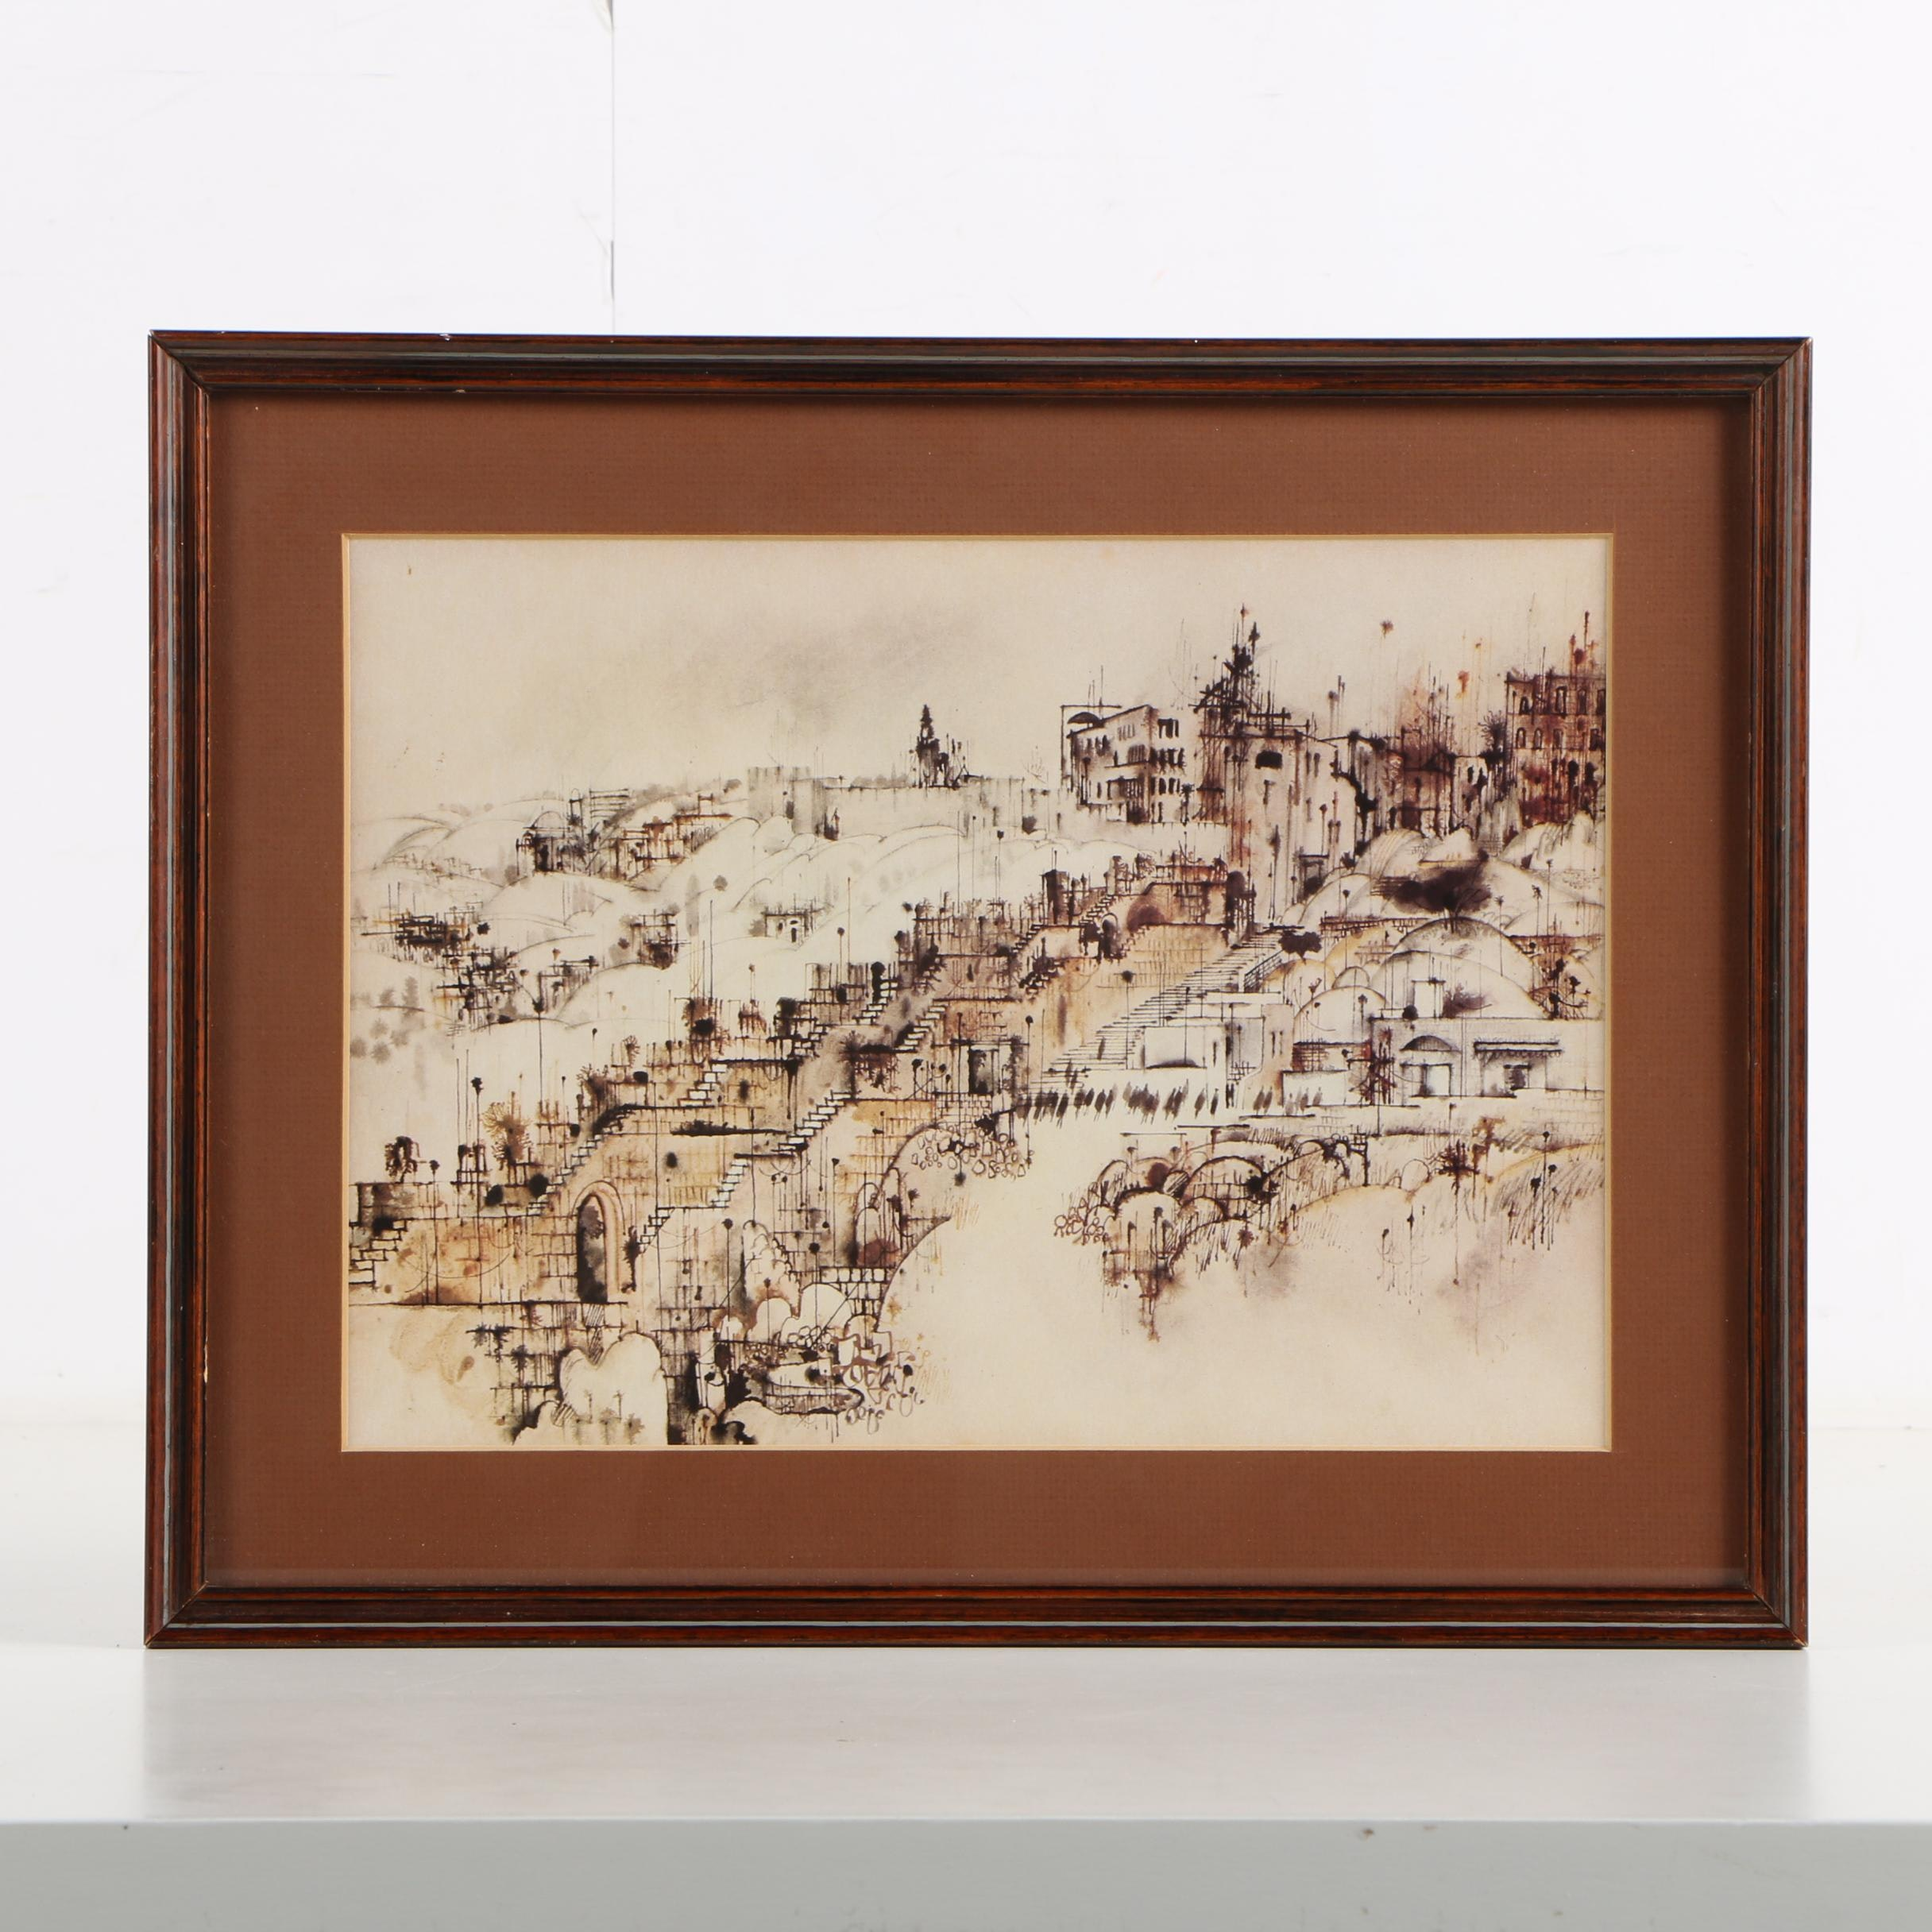 Offset Lithograph After Ink Drawing of Cityscape